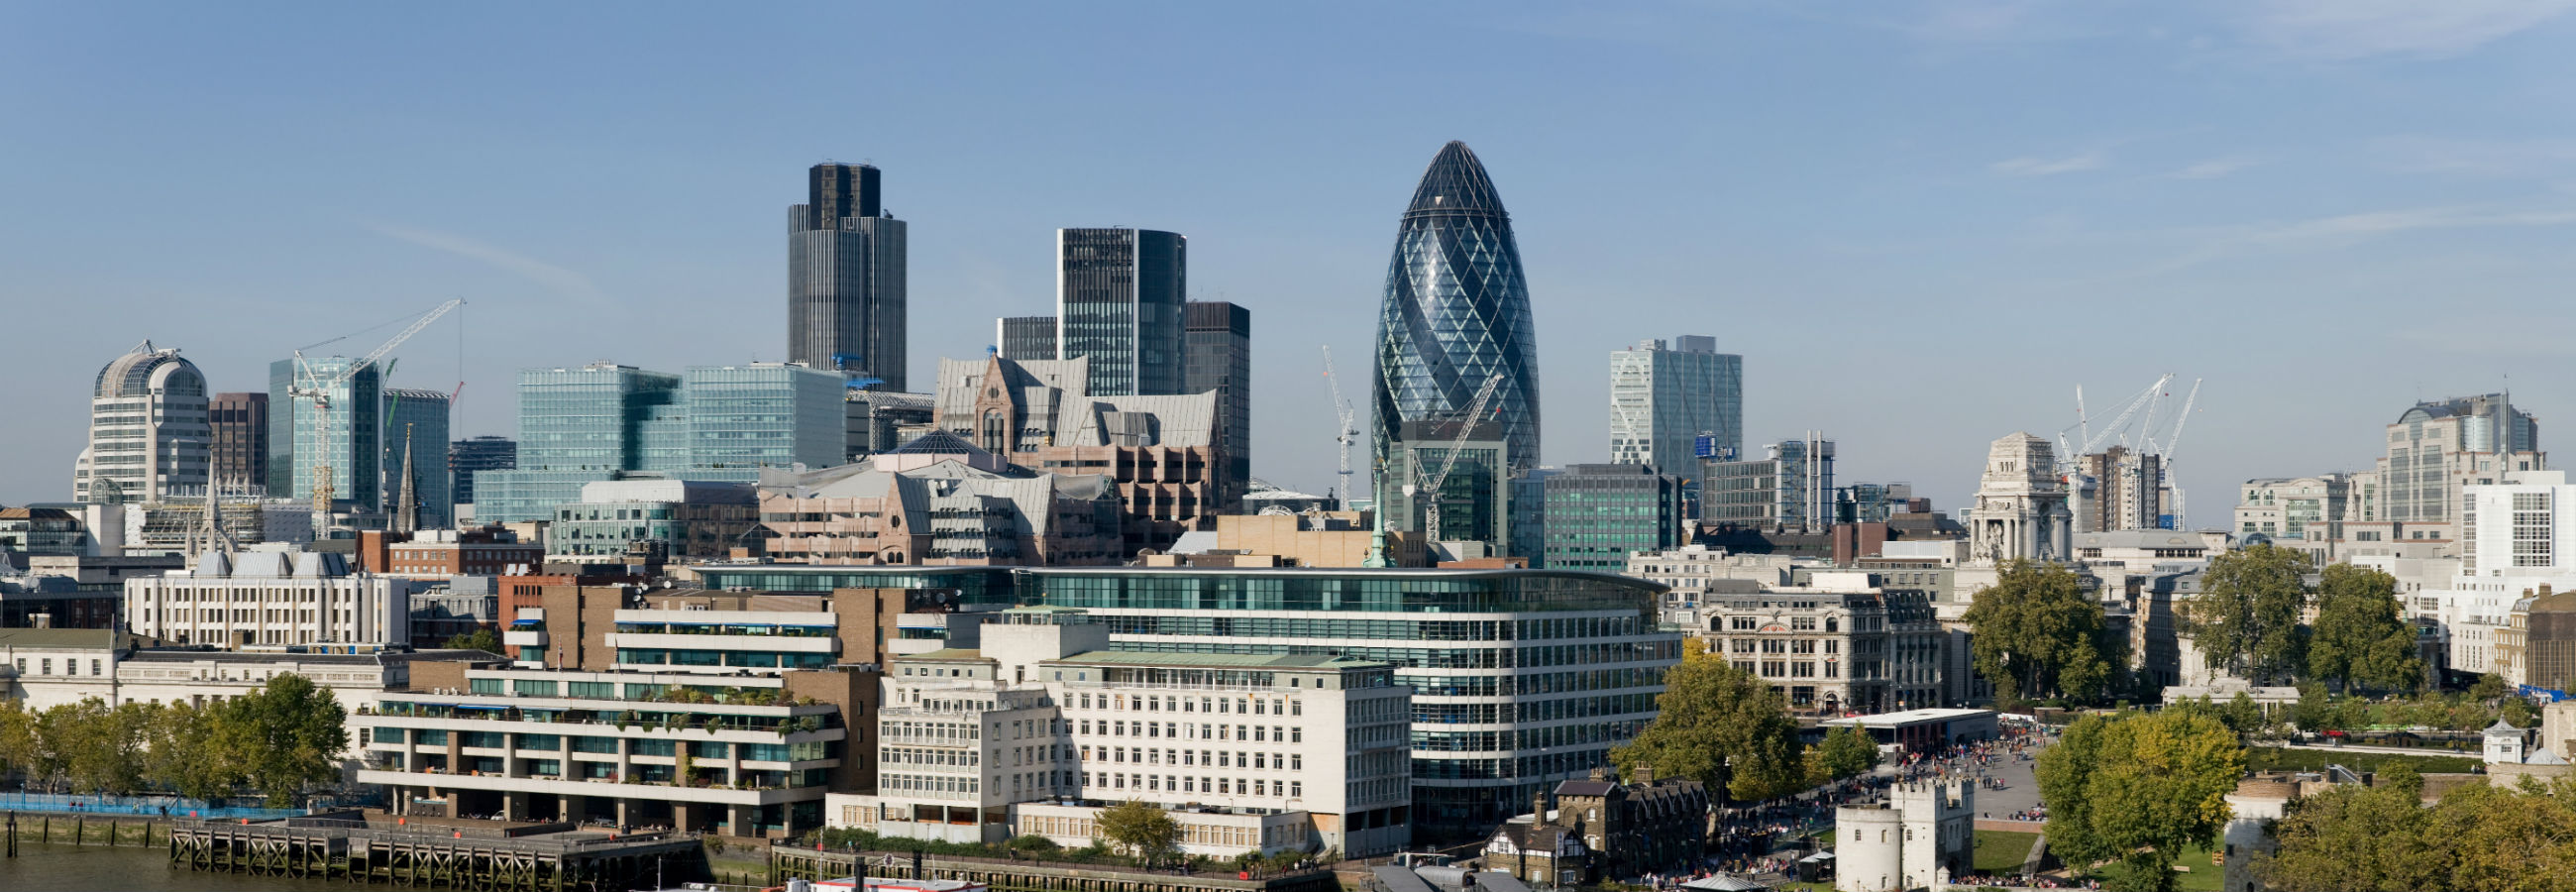 City_of_London_skyline_from_London_City_Hall_-_Oct_2008 4